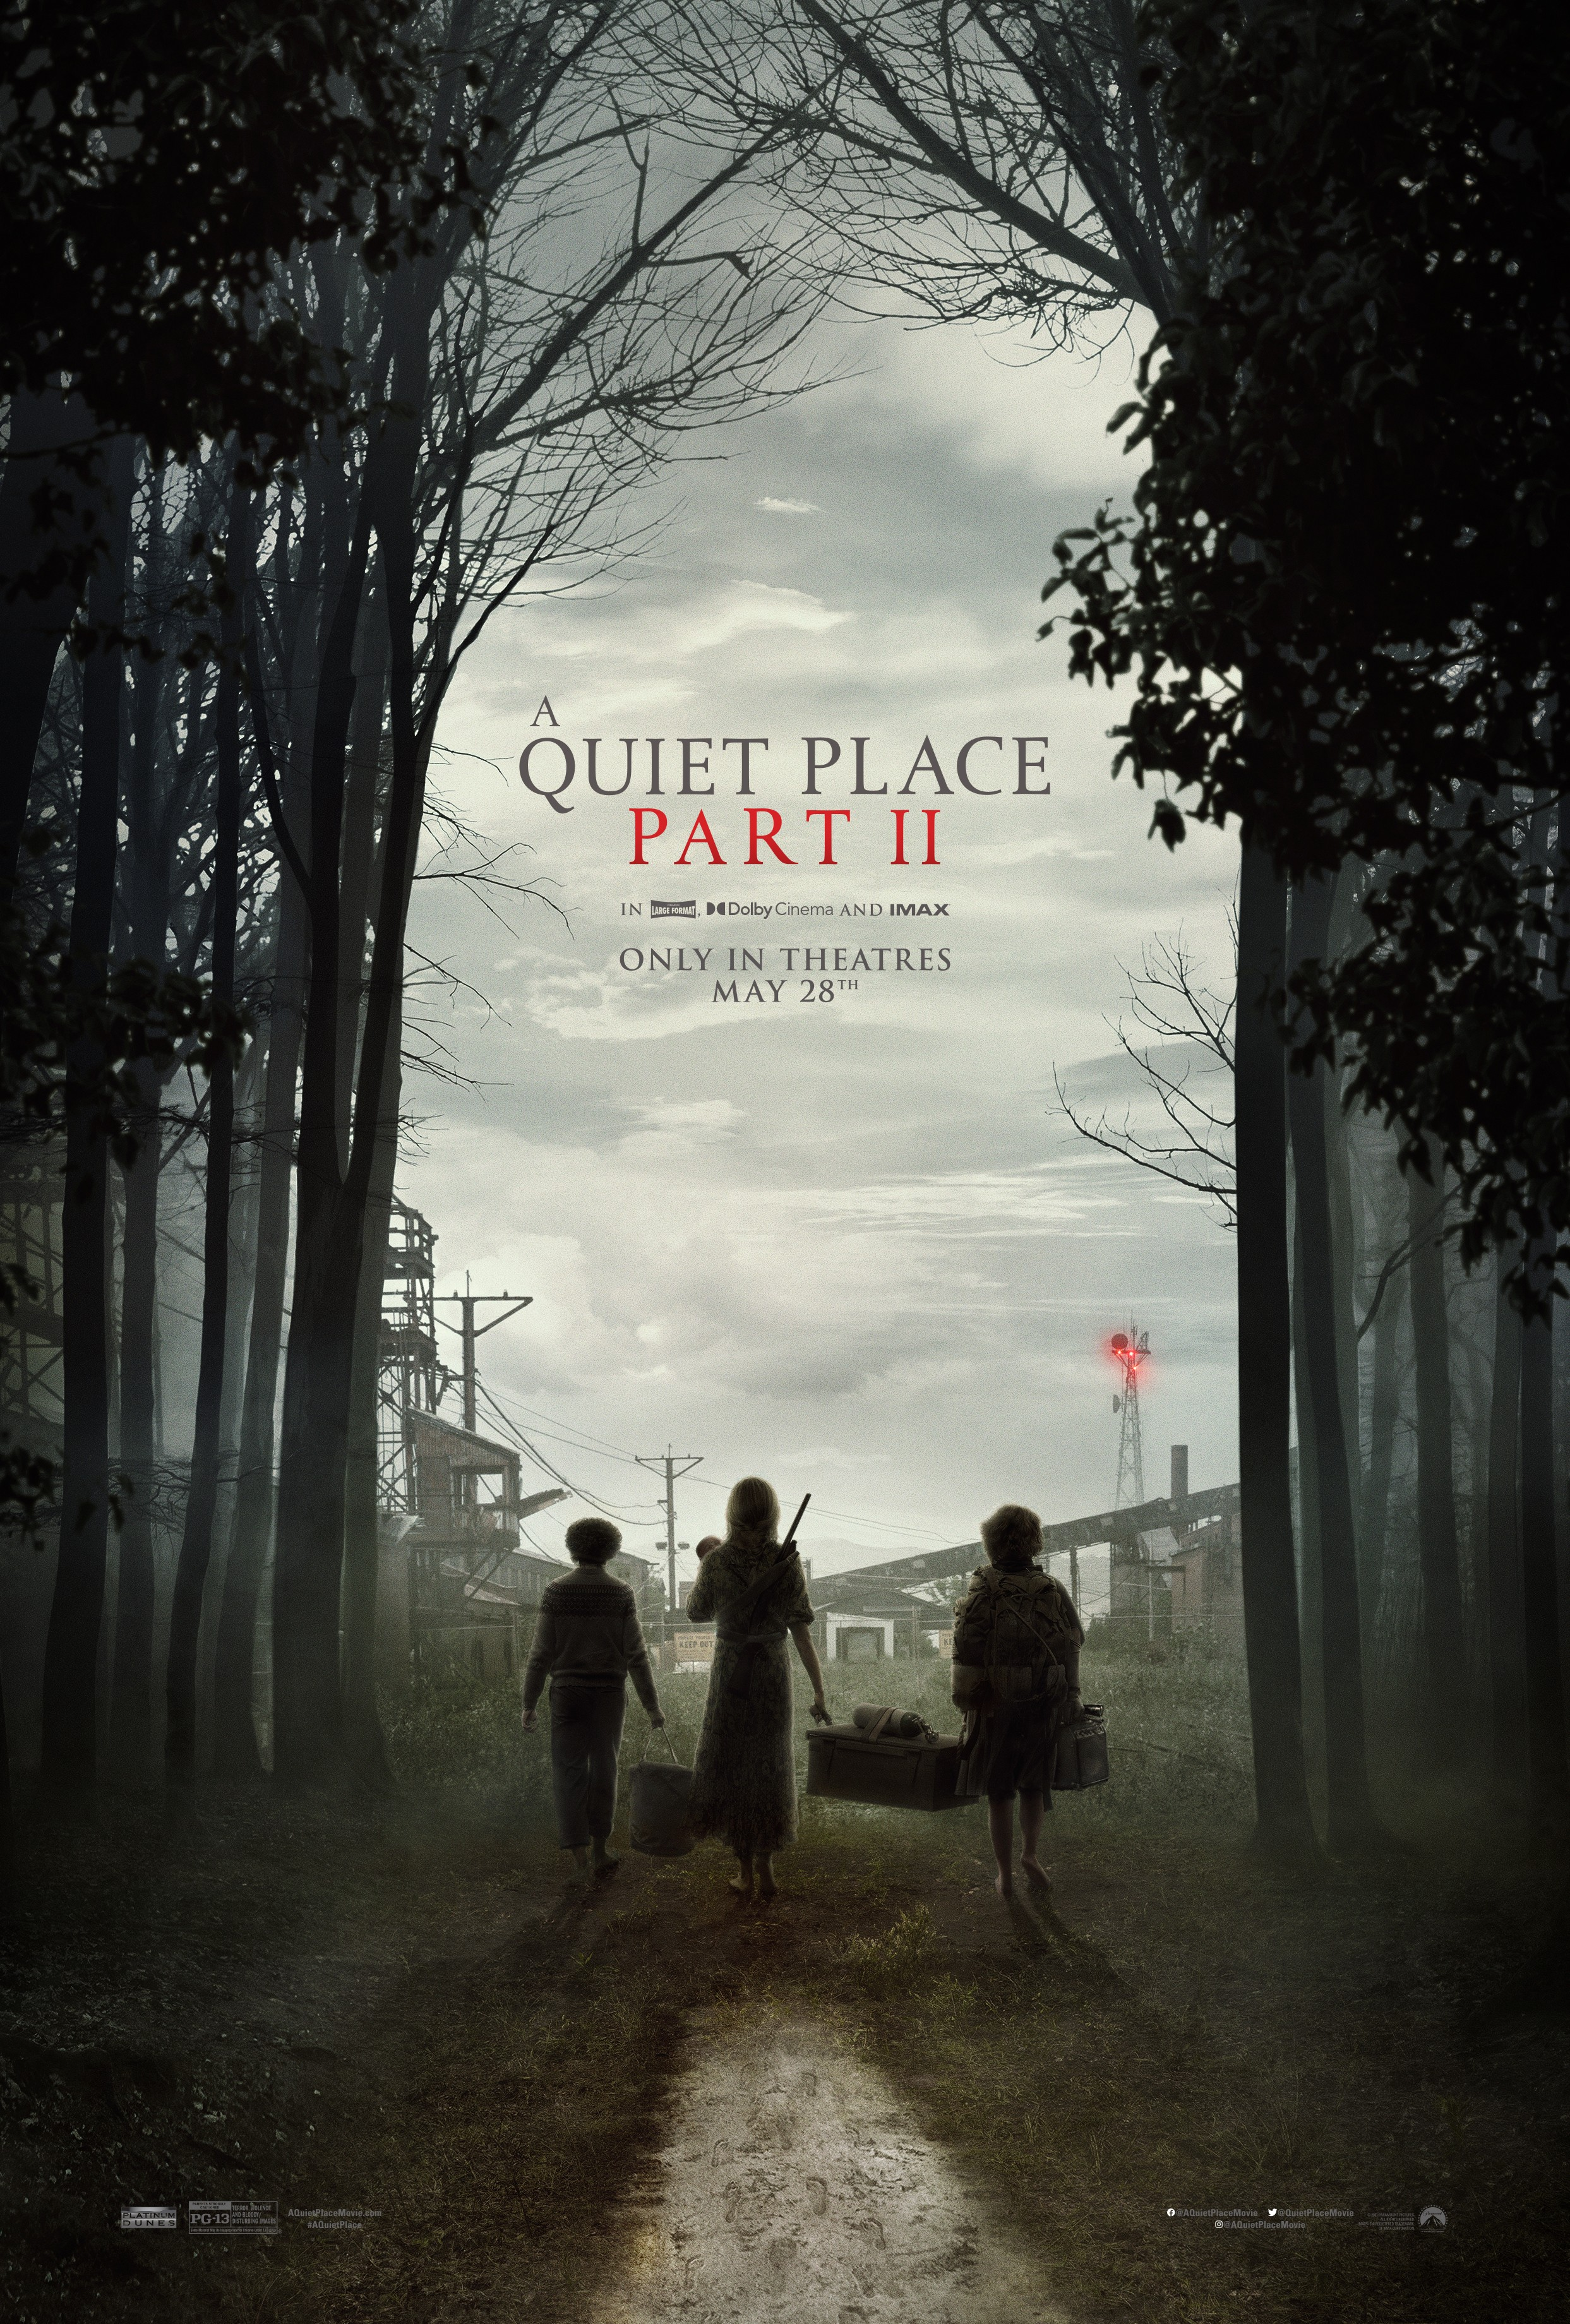 Poster for A Quiet Place Part II